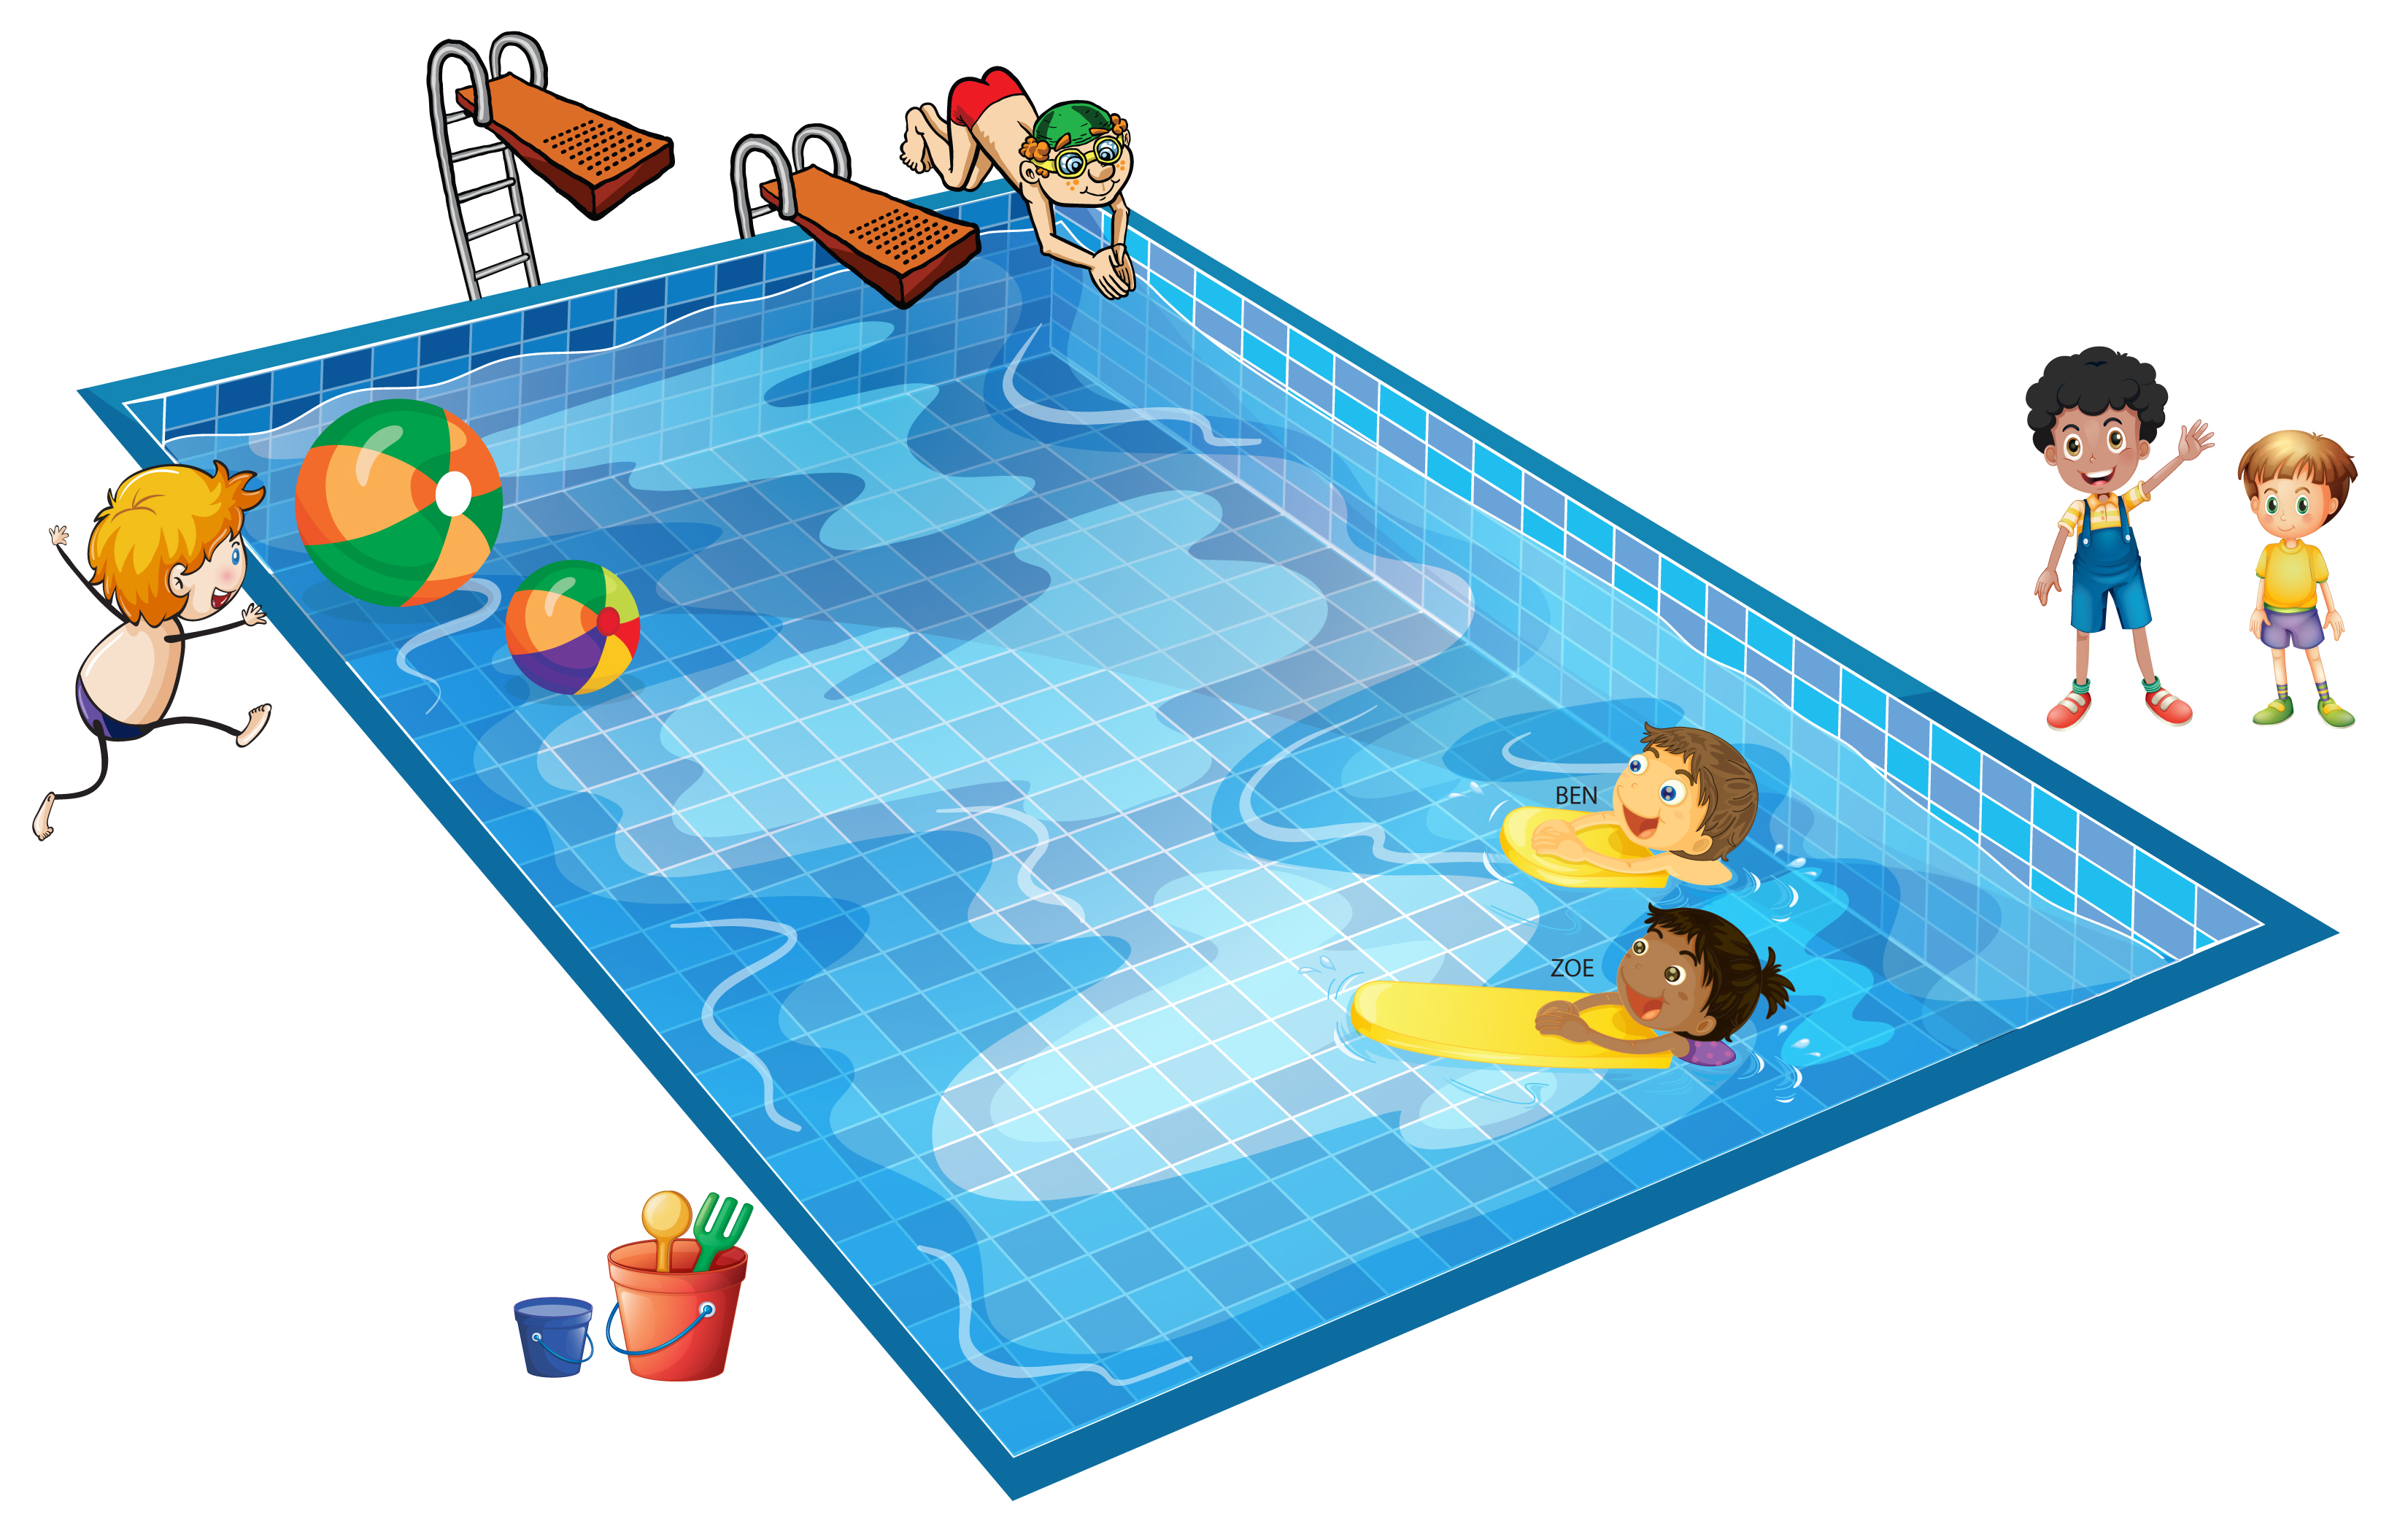 Hotel Icon Indoor Pool Clip Art At Clker-Hotel icon indoor pool clip art at clker vector clip art-3